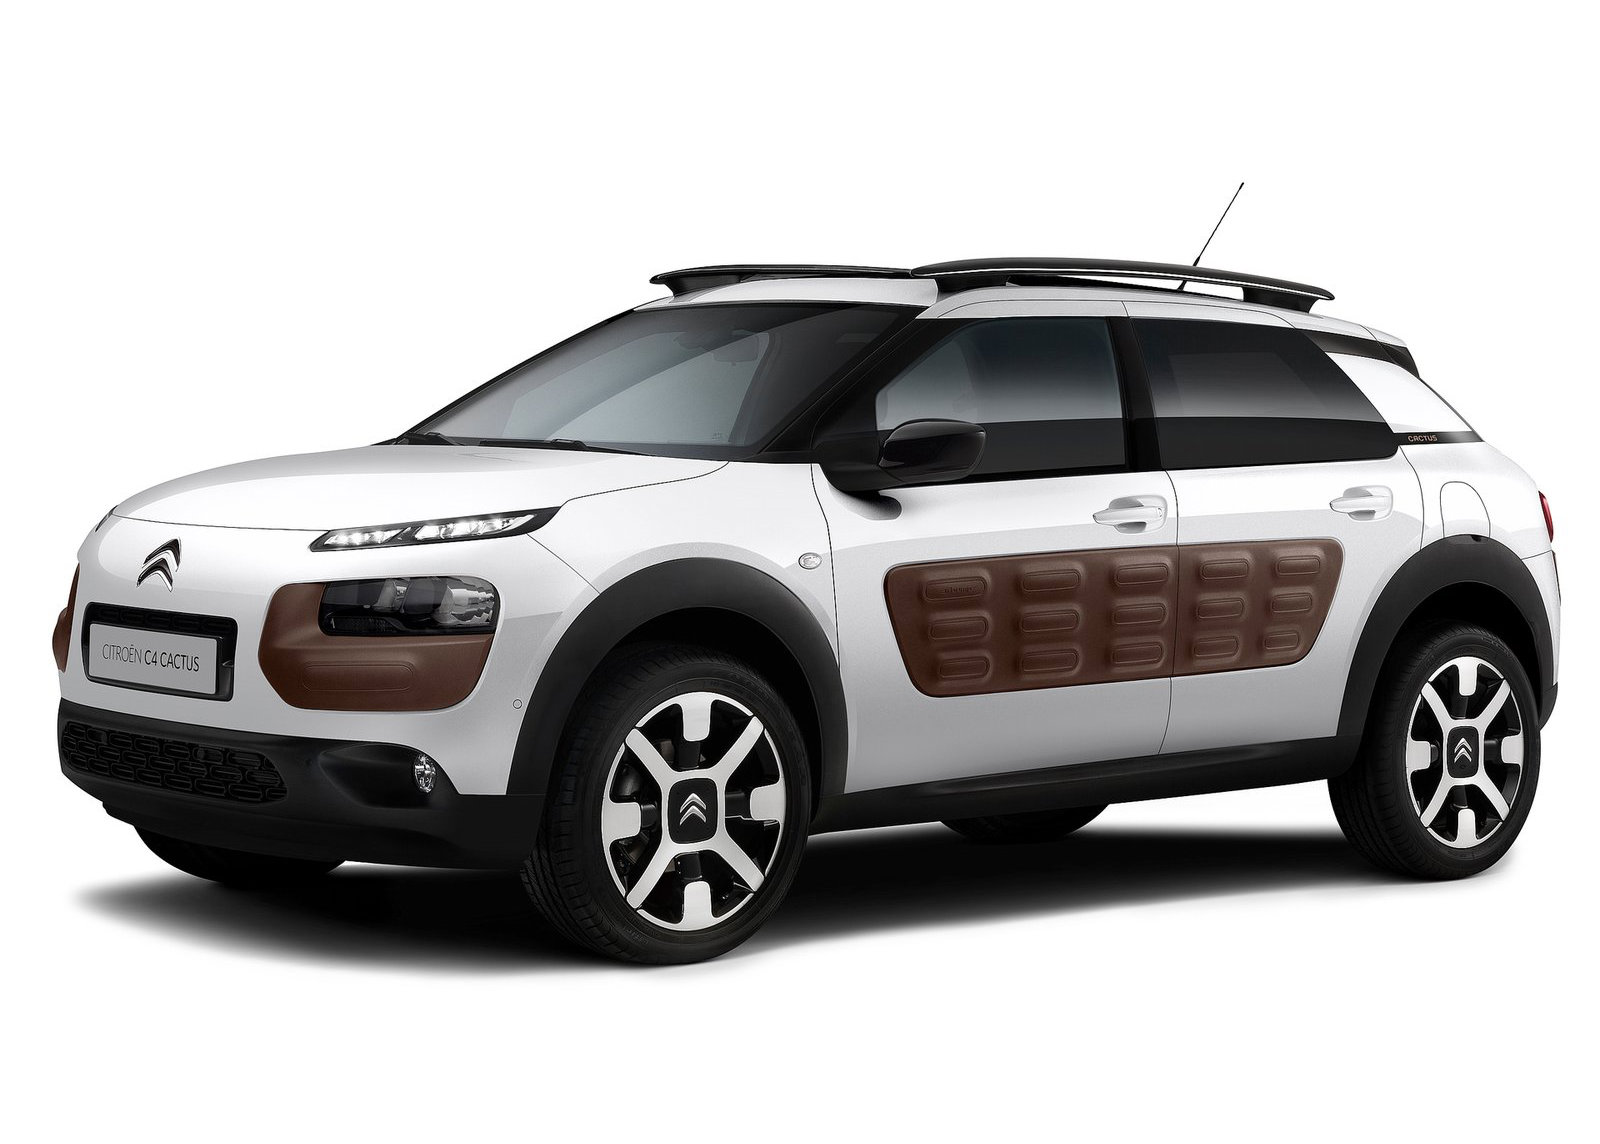 citroen c4 cactus uk pricing and specifications. Black Bedroom Furniture Sets. Home Design Ideas